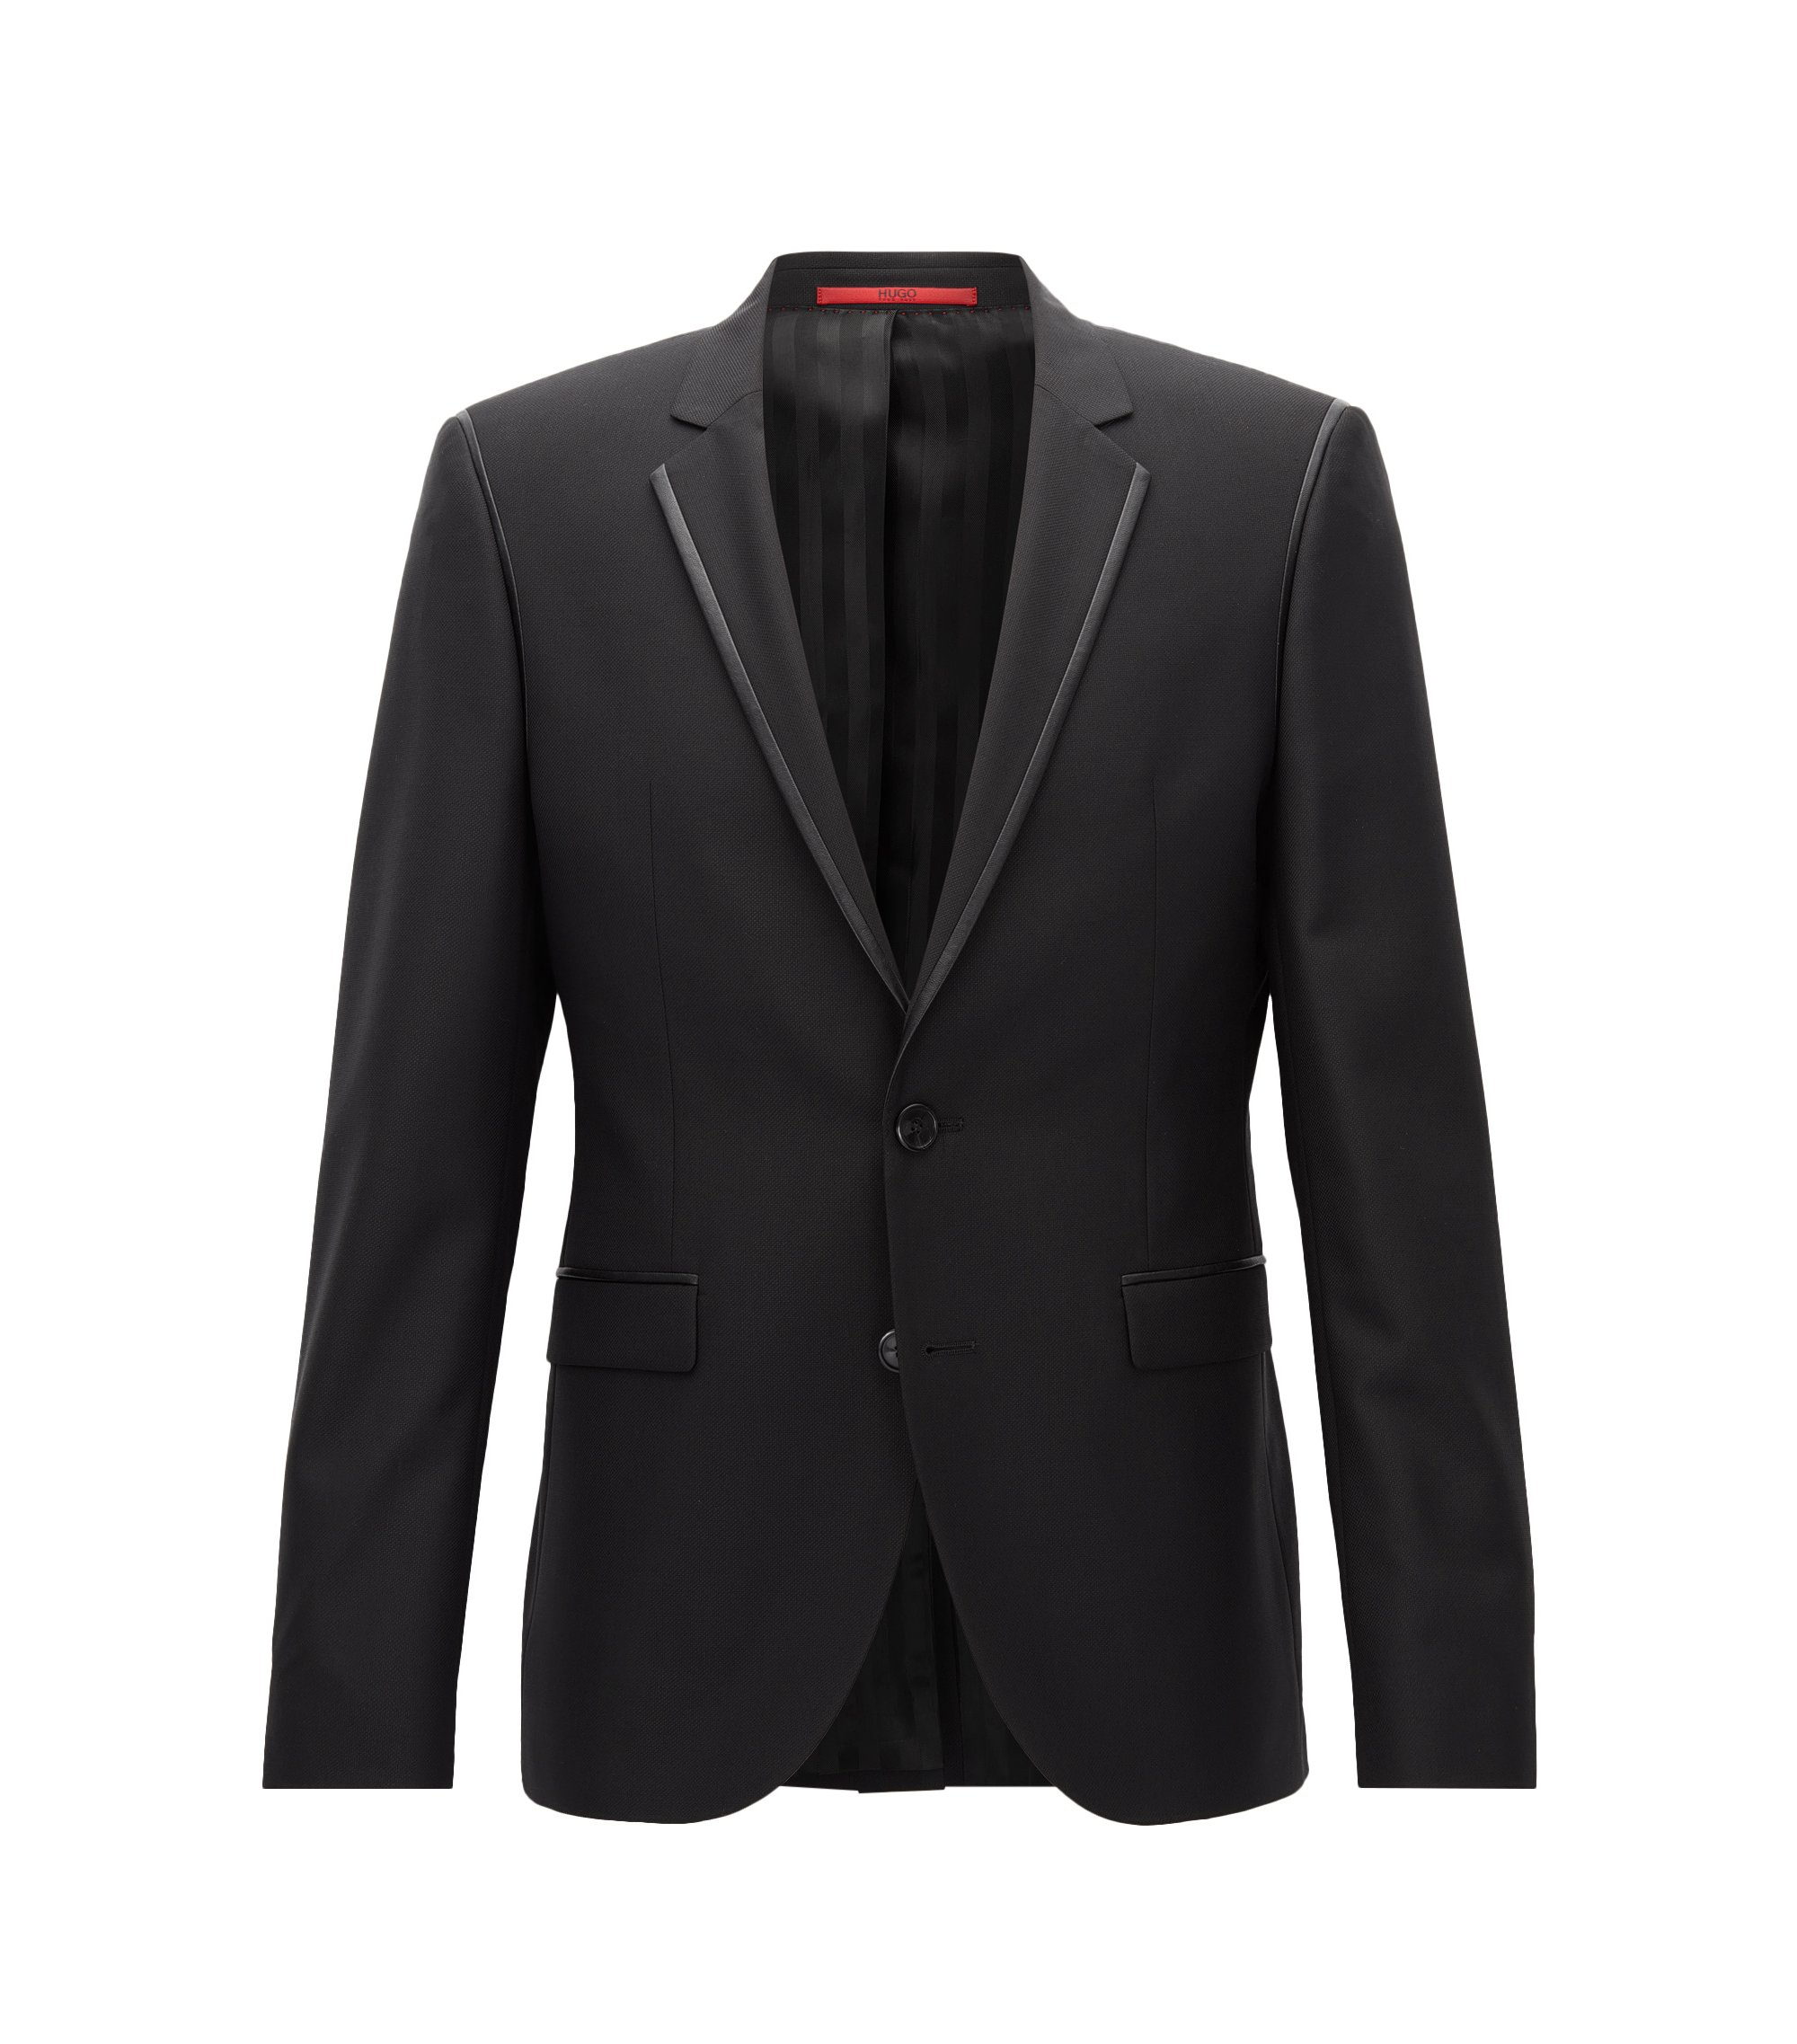 Extra-slim-fit jacket in a wool blend, Black